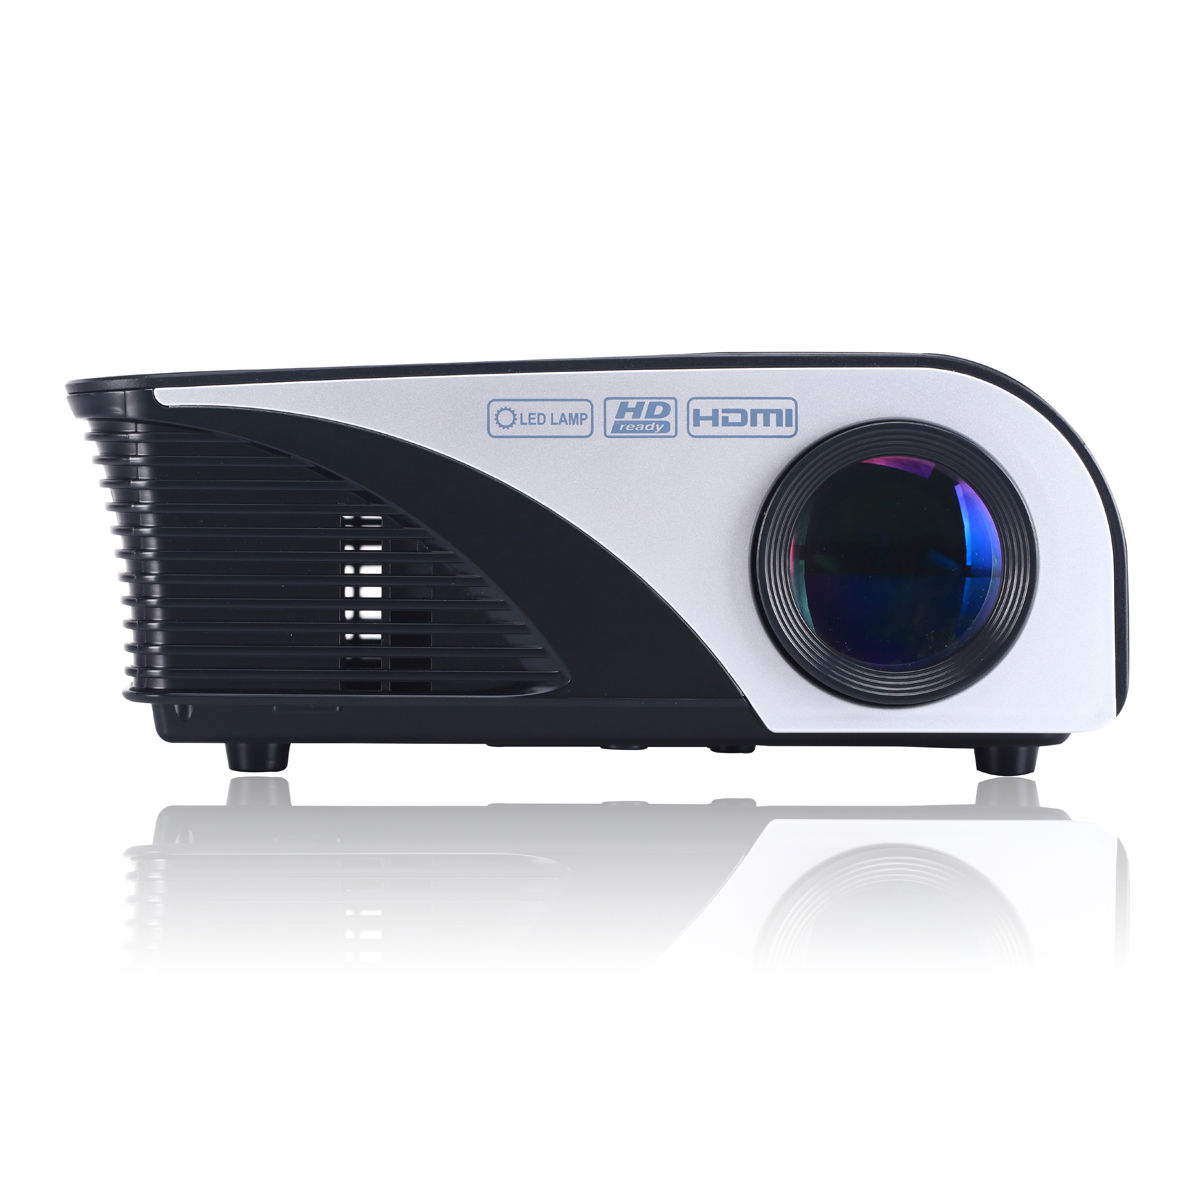 Rd 805b led mini projector home theater projectors 1200 for Miniature projector